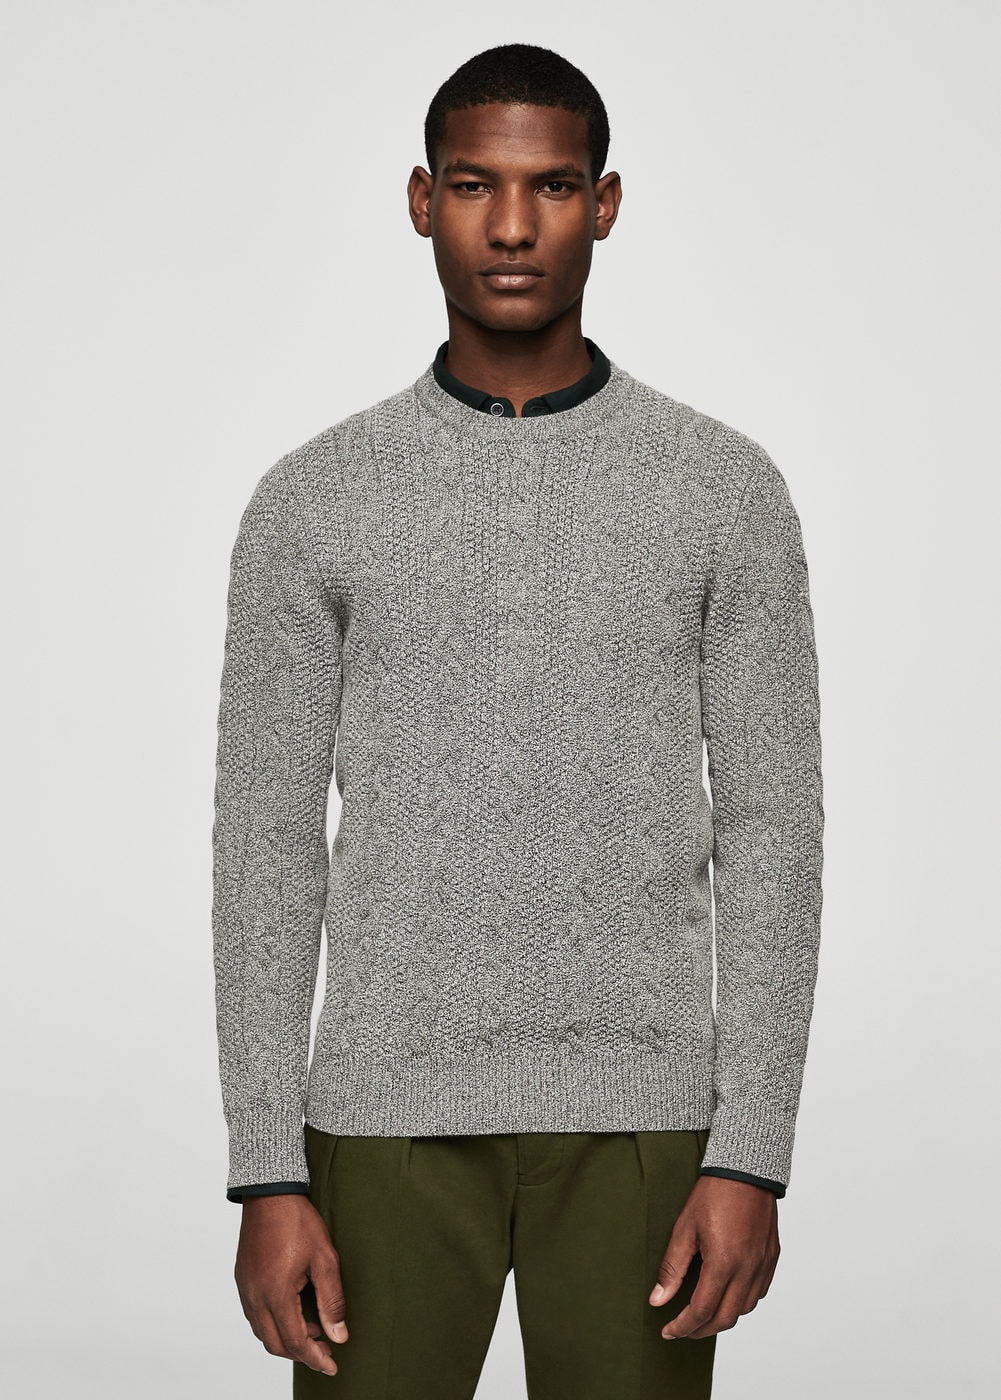 Mango, click image to go to sweater